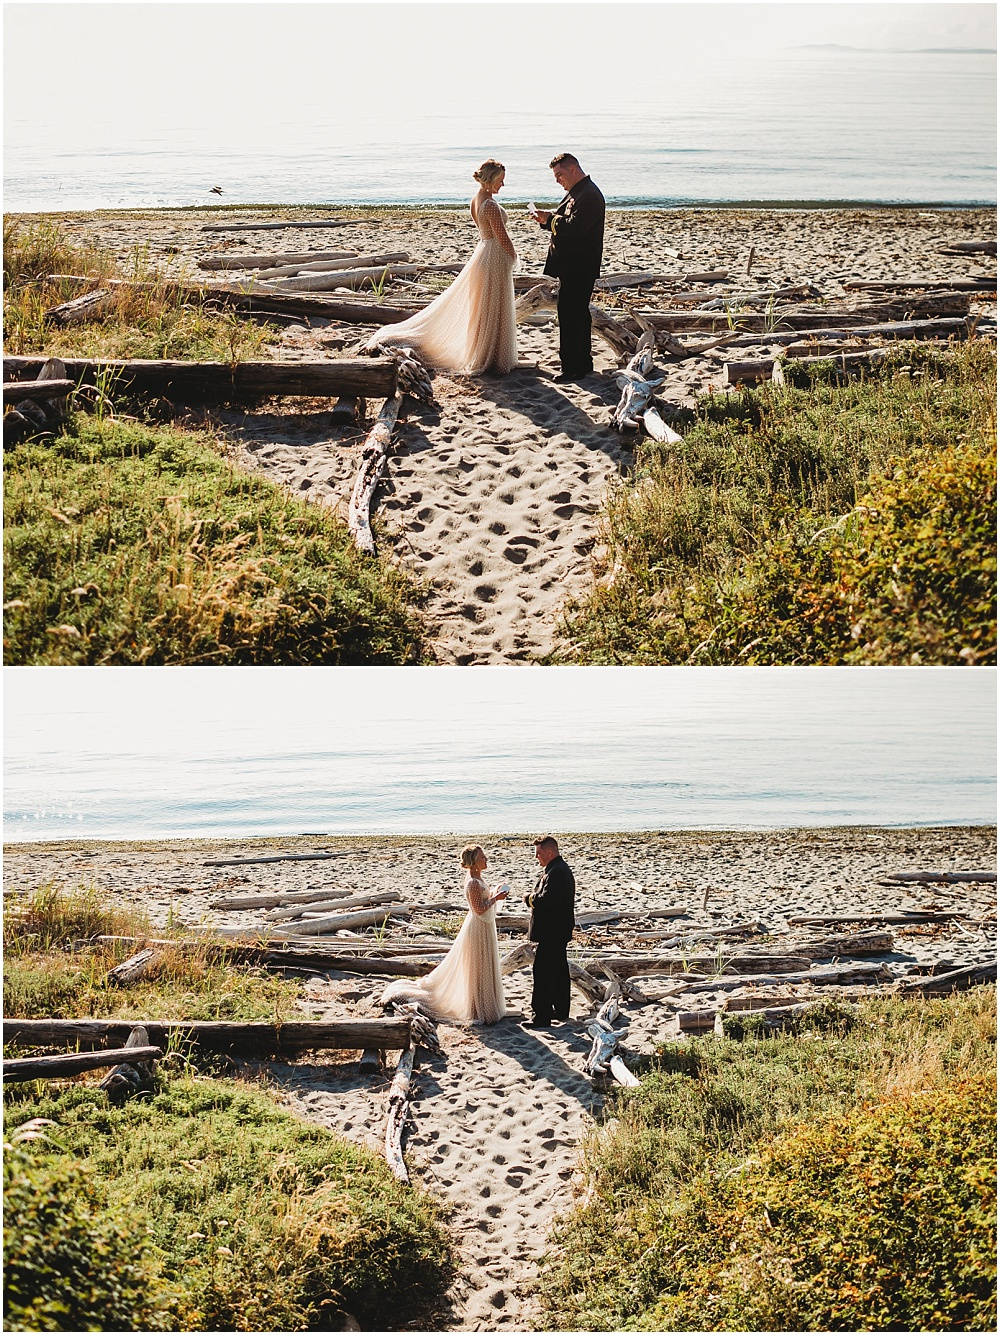 Bride and groom share vows on beach